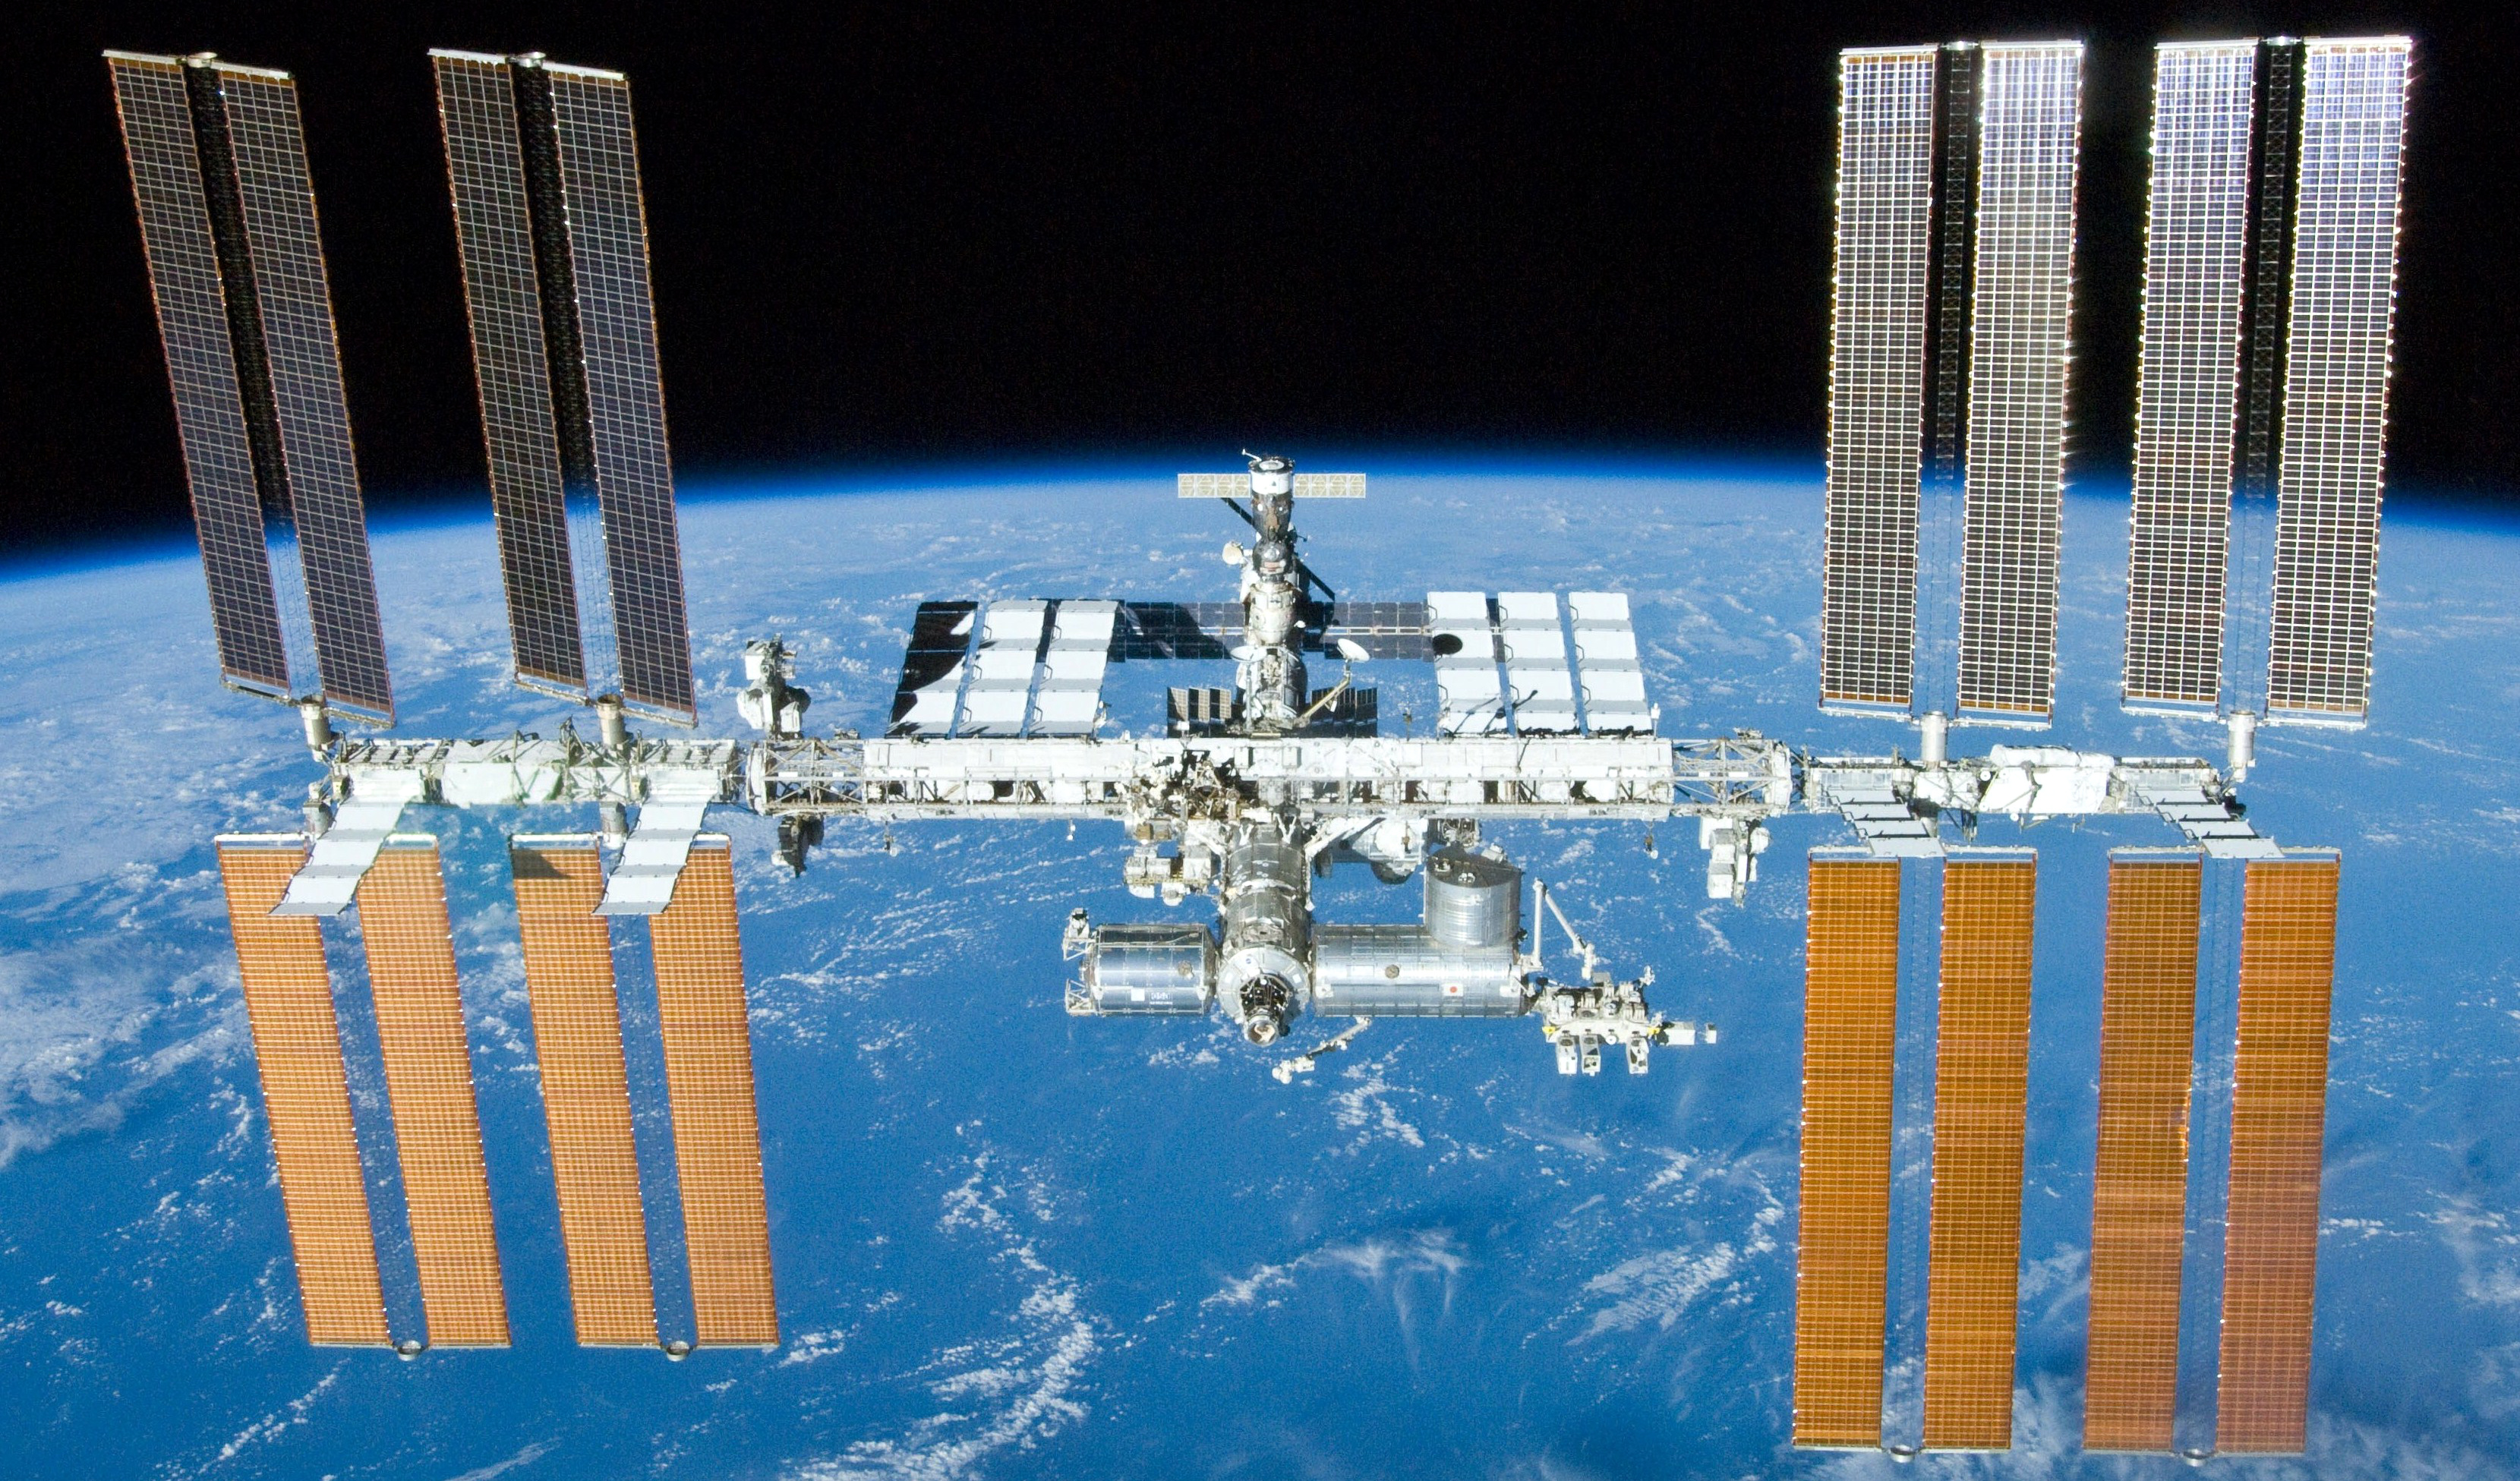 An image of the International Space Station taken on the STS-132 mission in 2010.